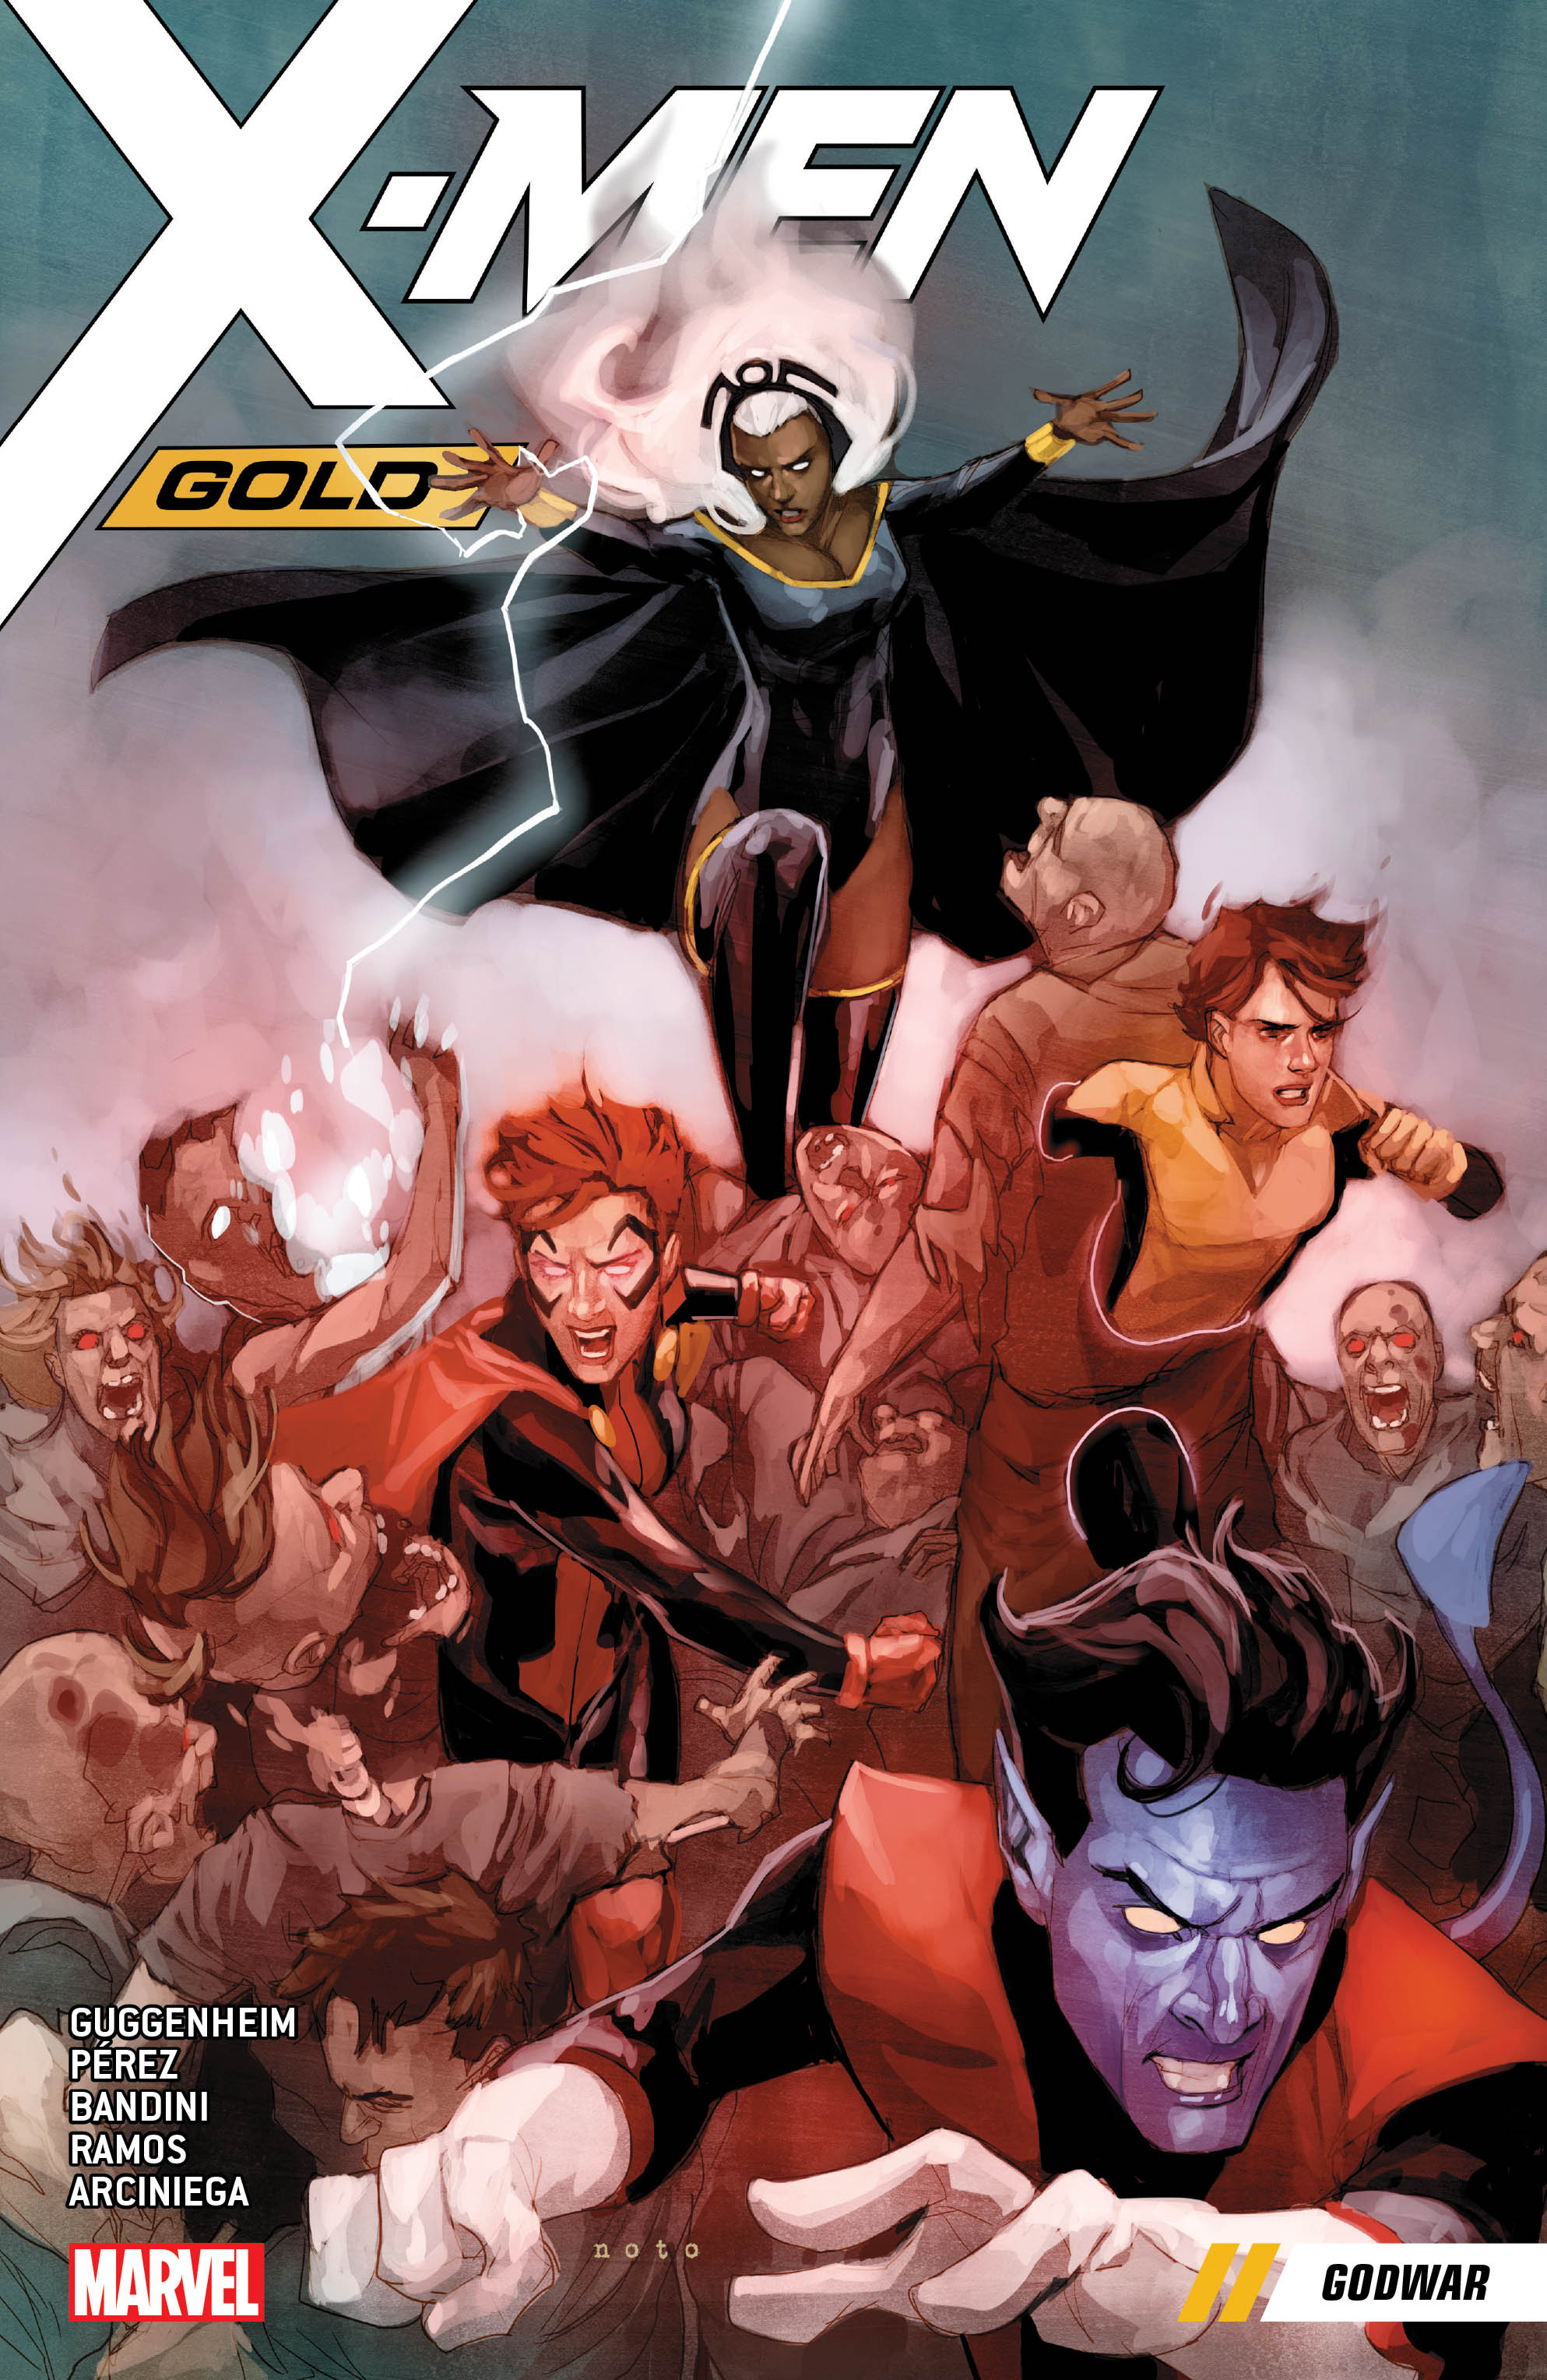 X-Men Gold Vol. 7: Godwar (Trade Paperback)